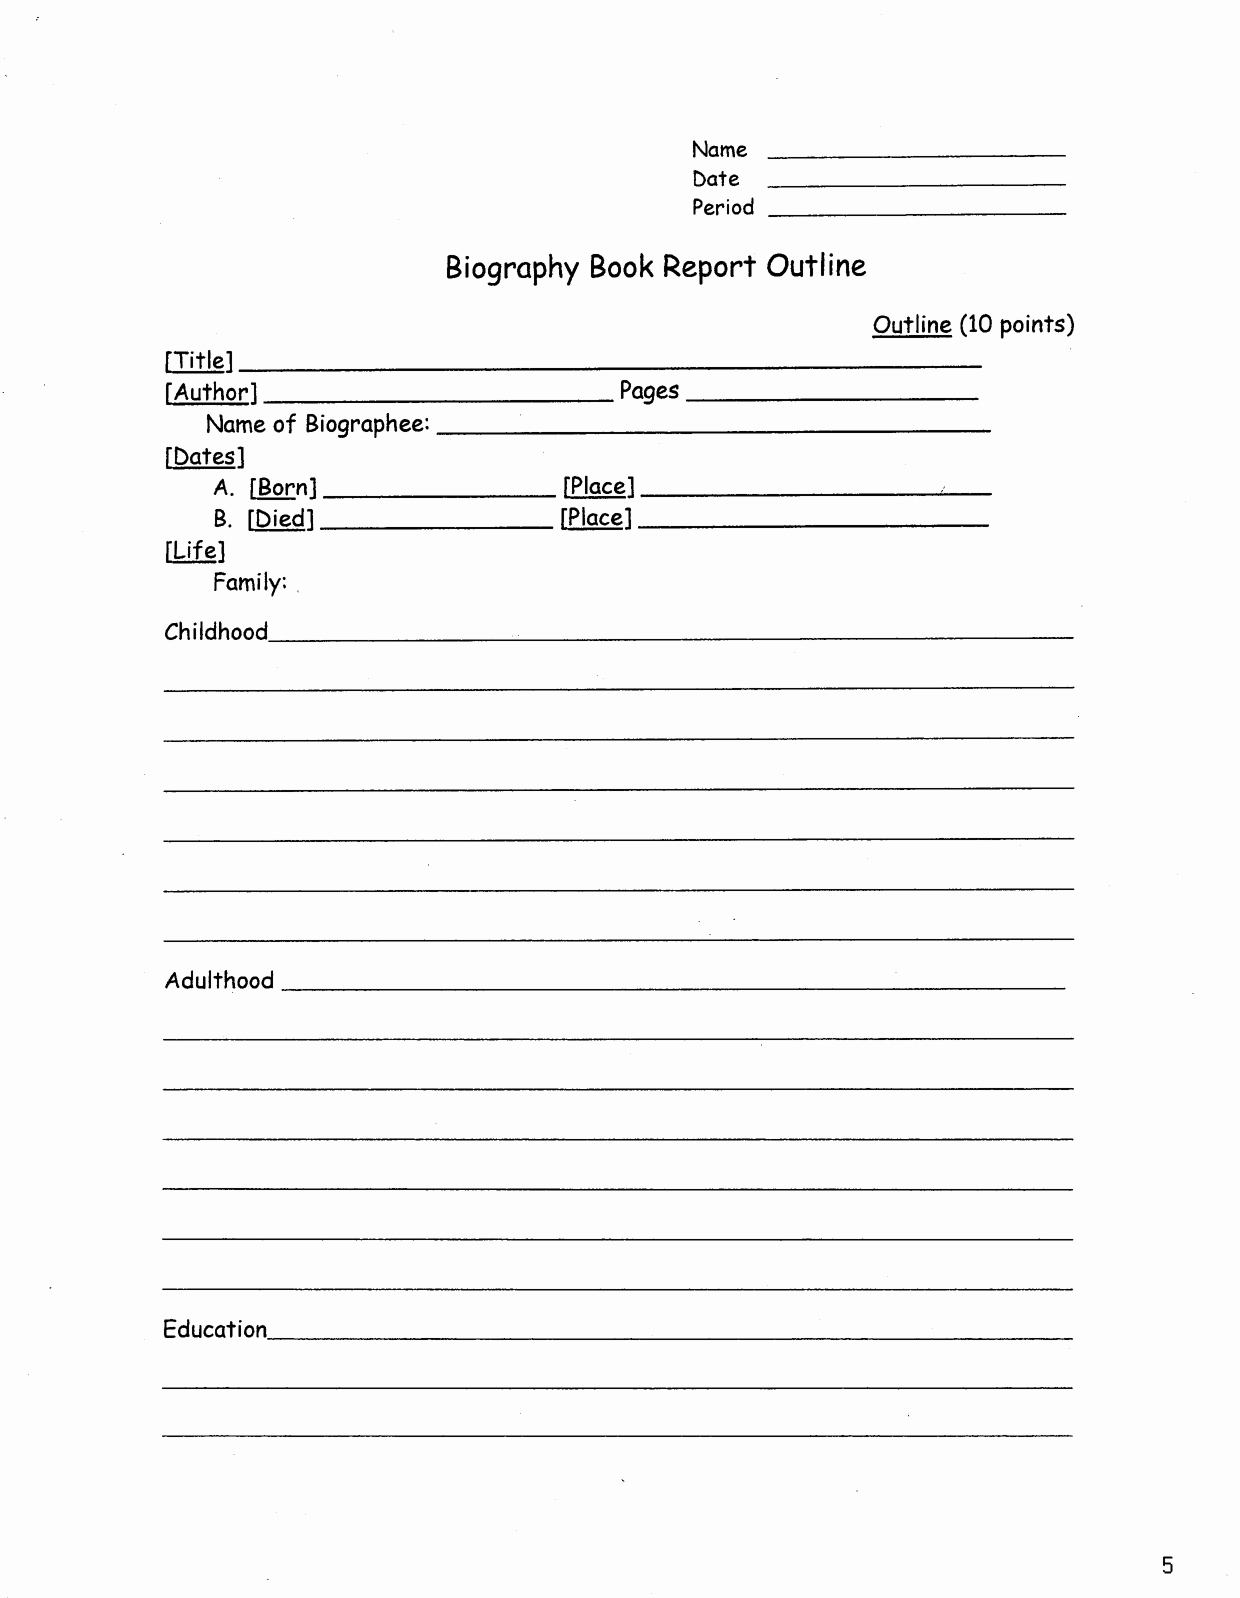 Biography Book Report Template Inspirational Biography Book Report Outline Book Report